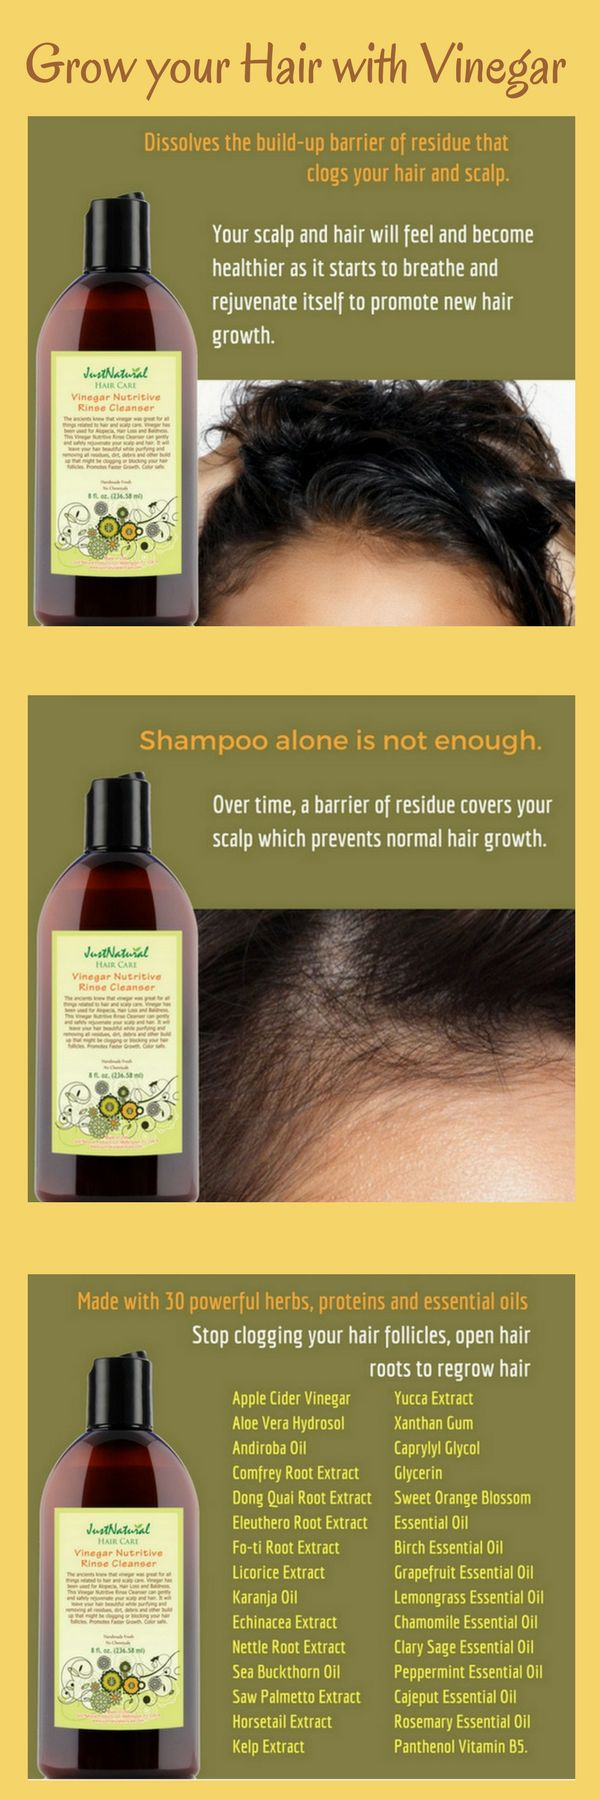 Vinegar Rinse Has Been Used For Centuries For Hair and Scalp Care.